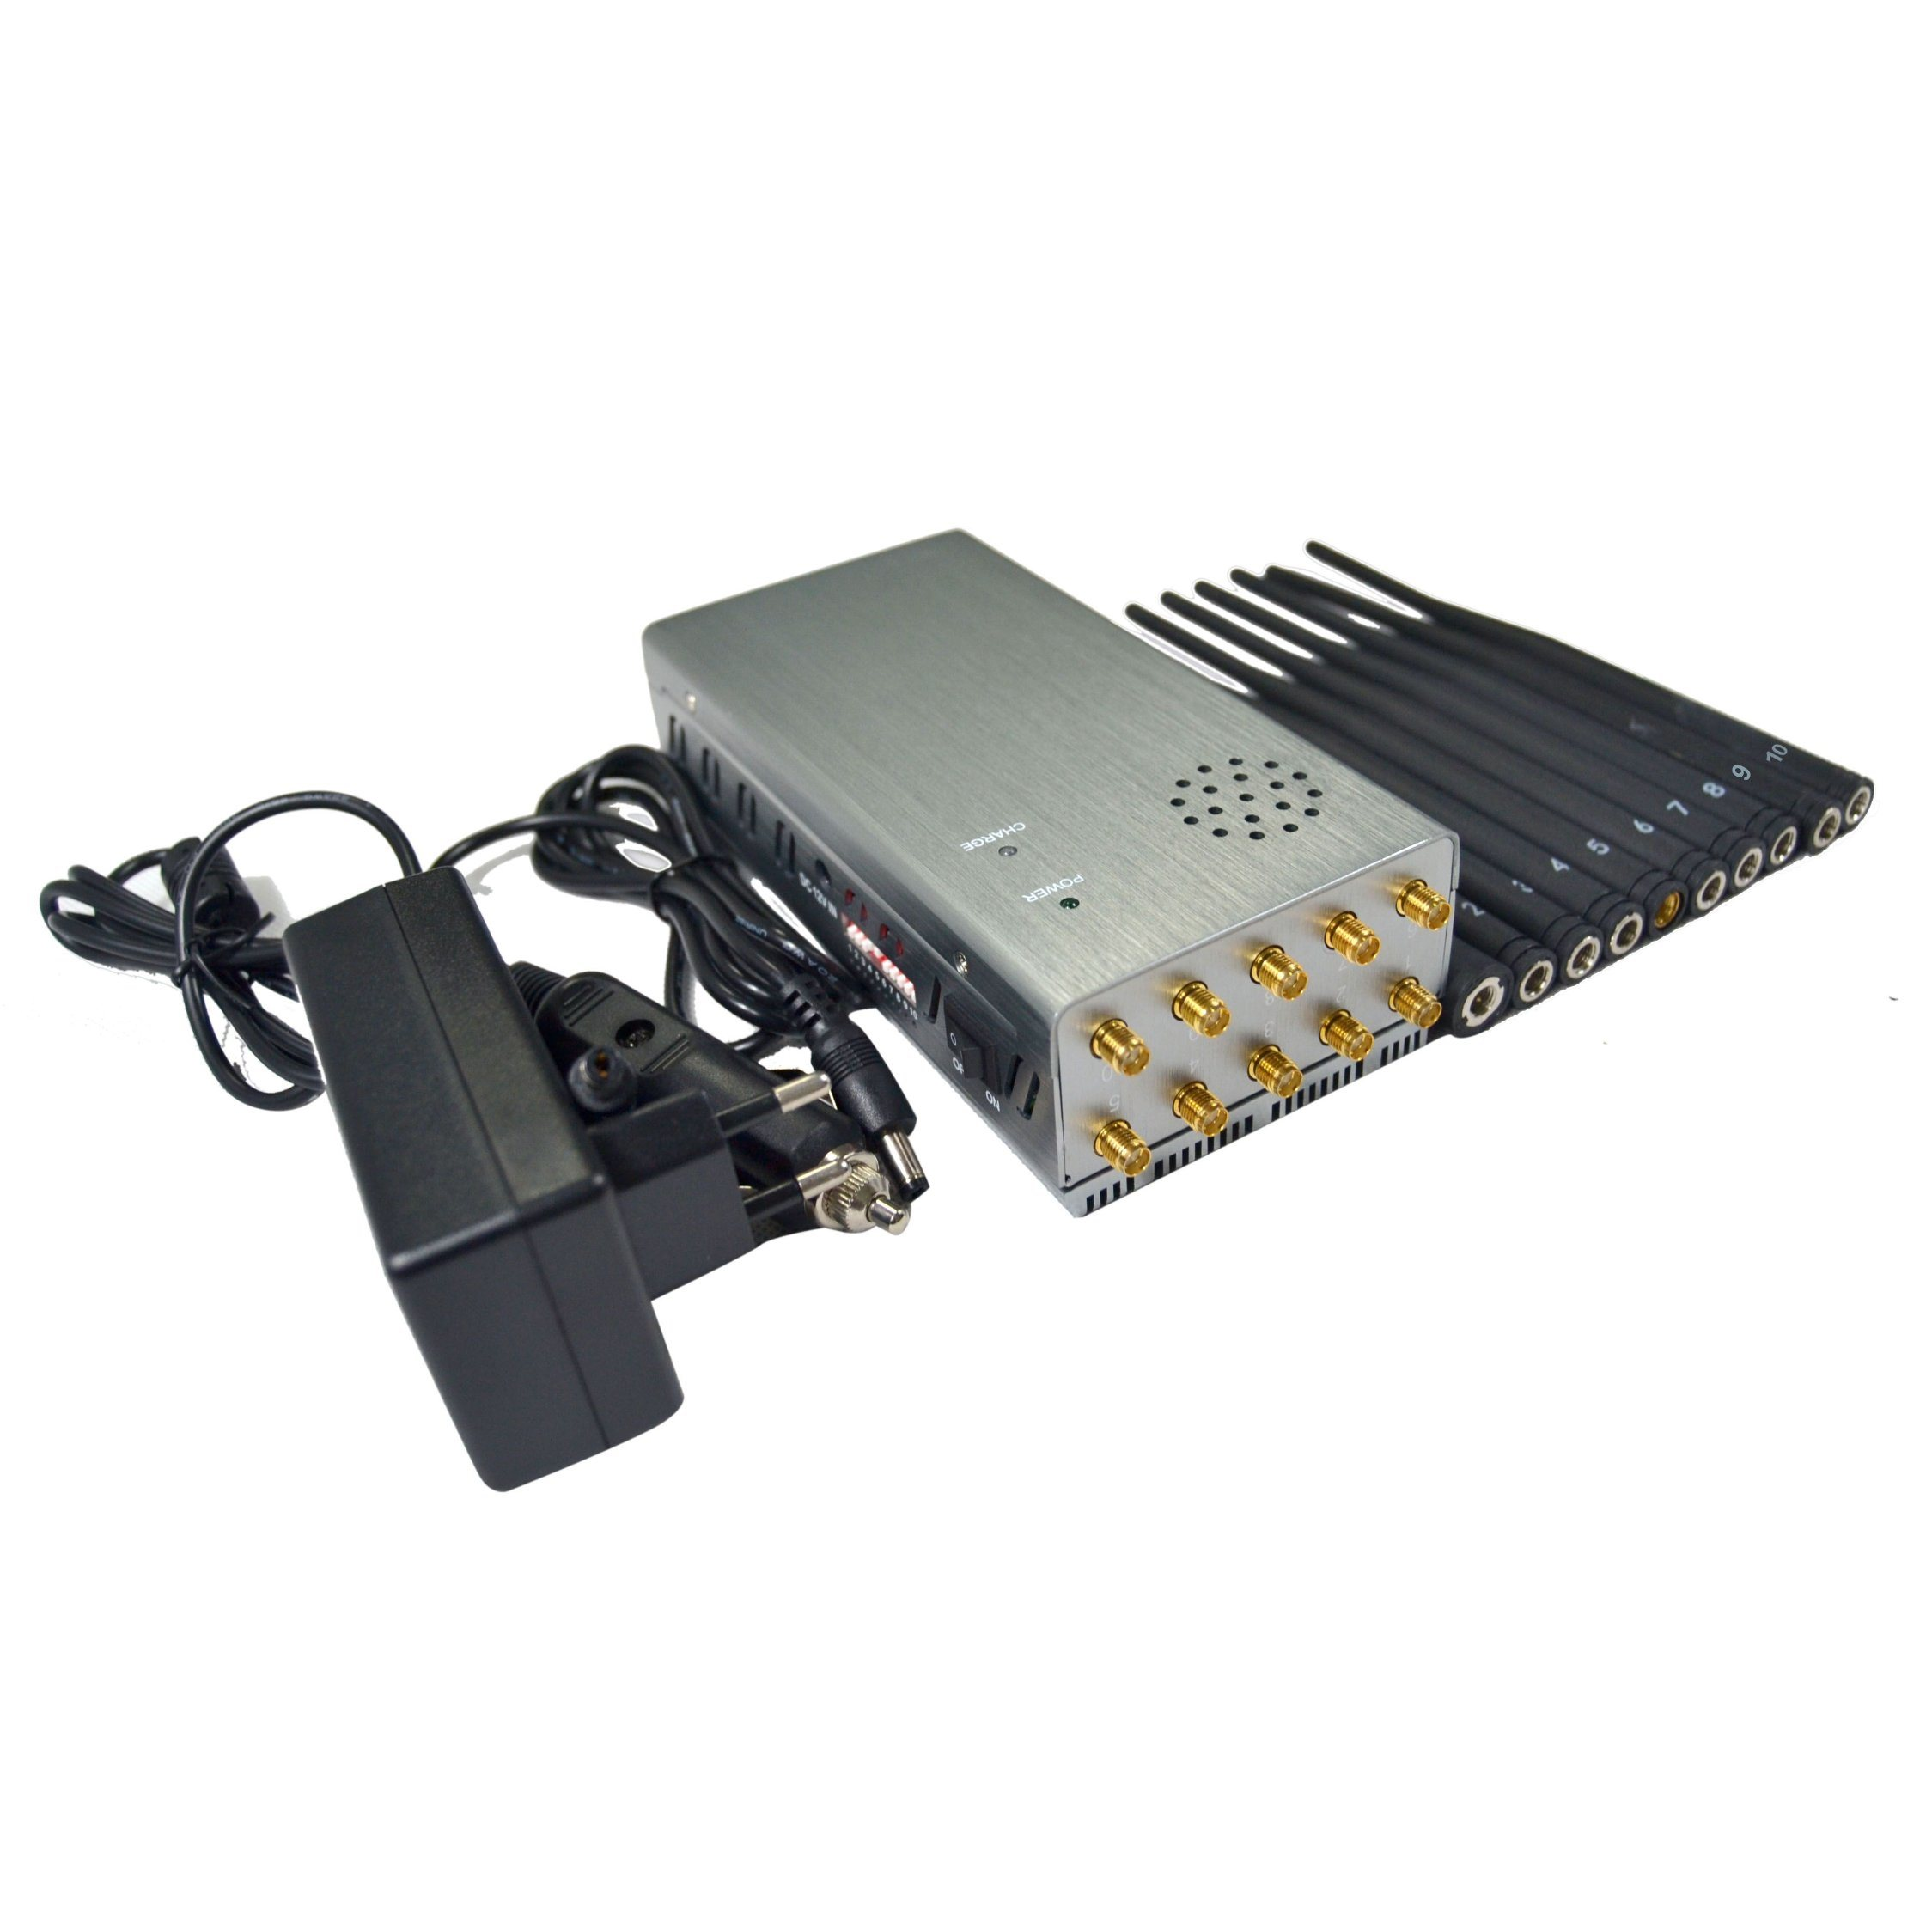 phone jammer lelong my account | China Full Band Pocket Jammer with 8000mA Attery Long Working Time Satify Your Outdoor Working Requirements - China Mobile Phone Jammer, Full Band Signal Blockers